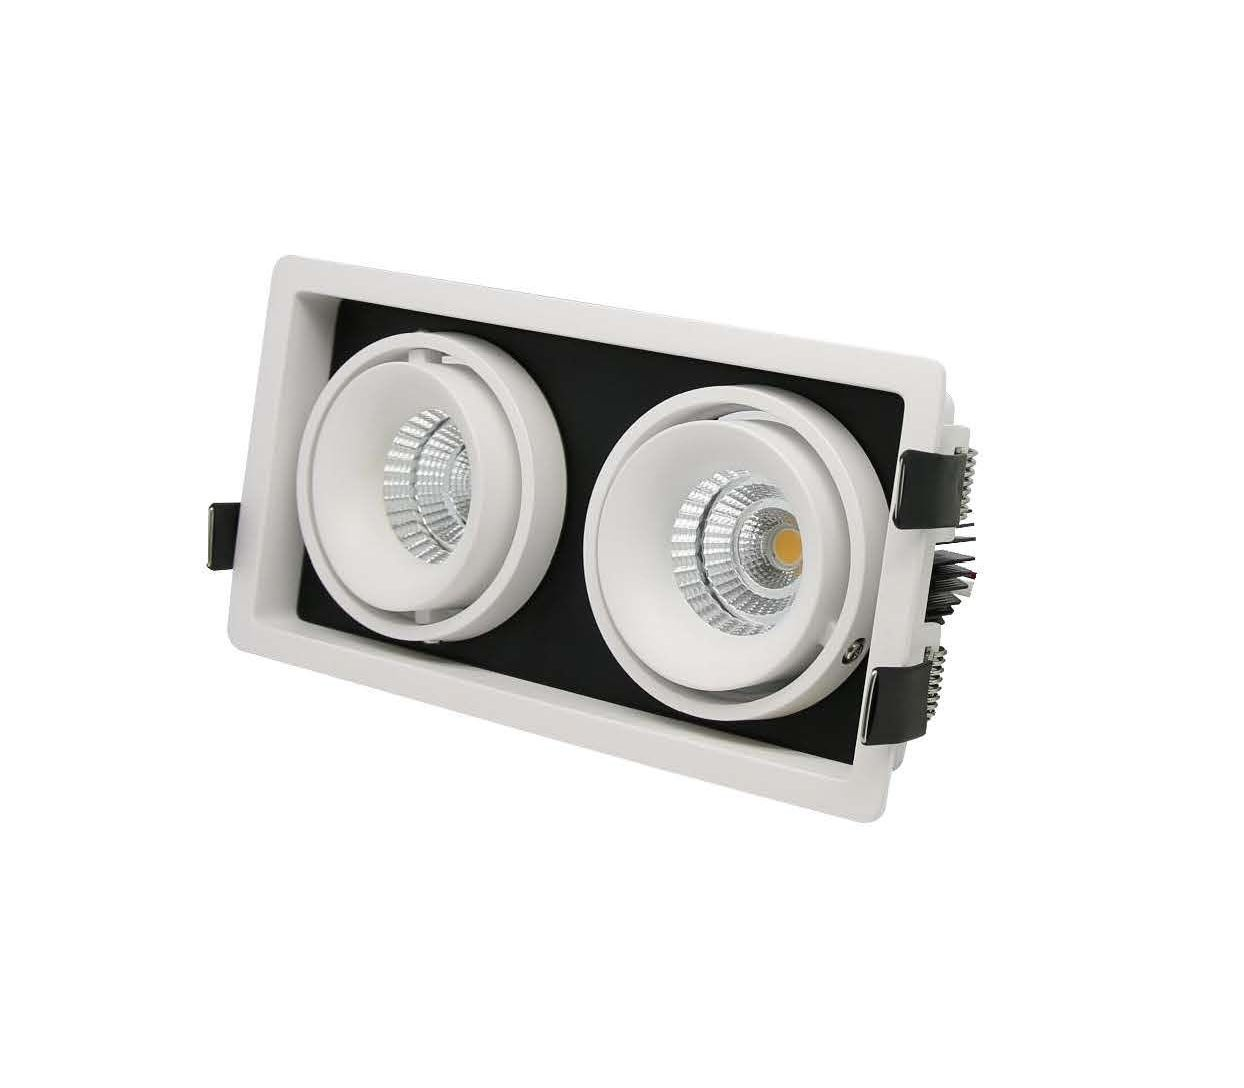 ARI 2 twin adjustable recessed downlight